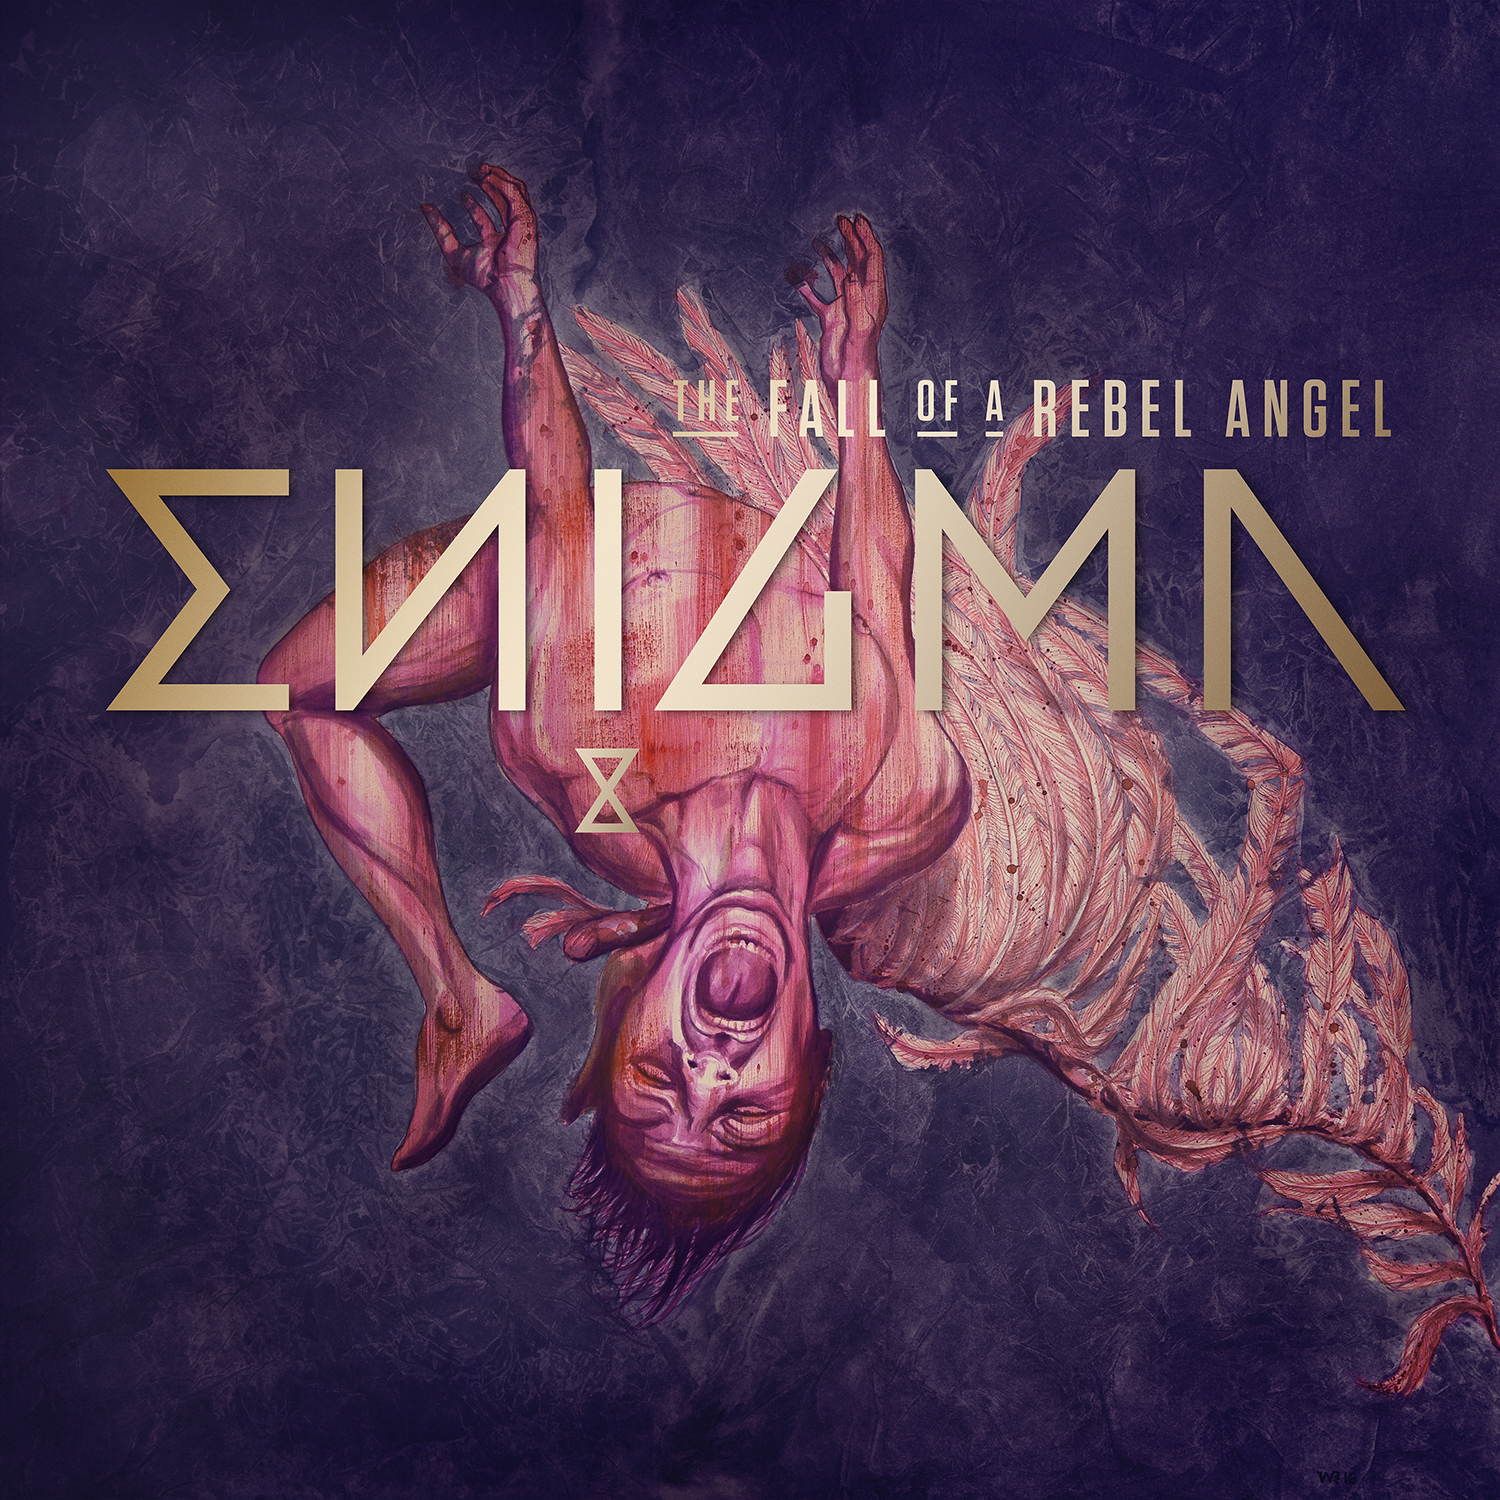 Enigma Enigma. The Fall Of A Rebel Angel. Deluxe Limited (2 CD) the enigma that was thomas william cowan